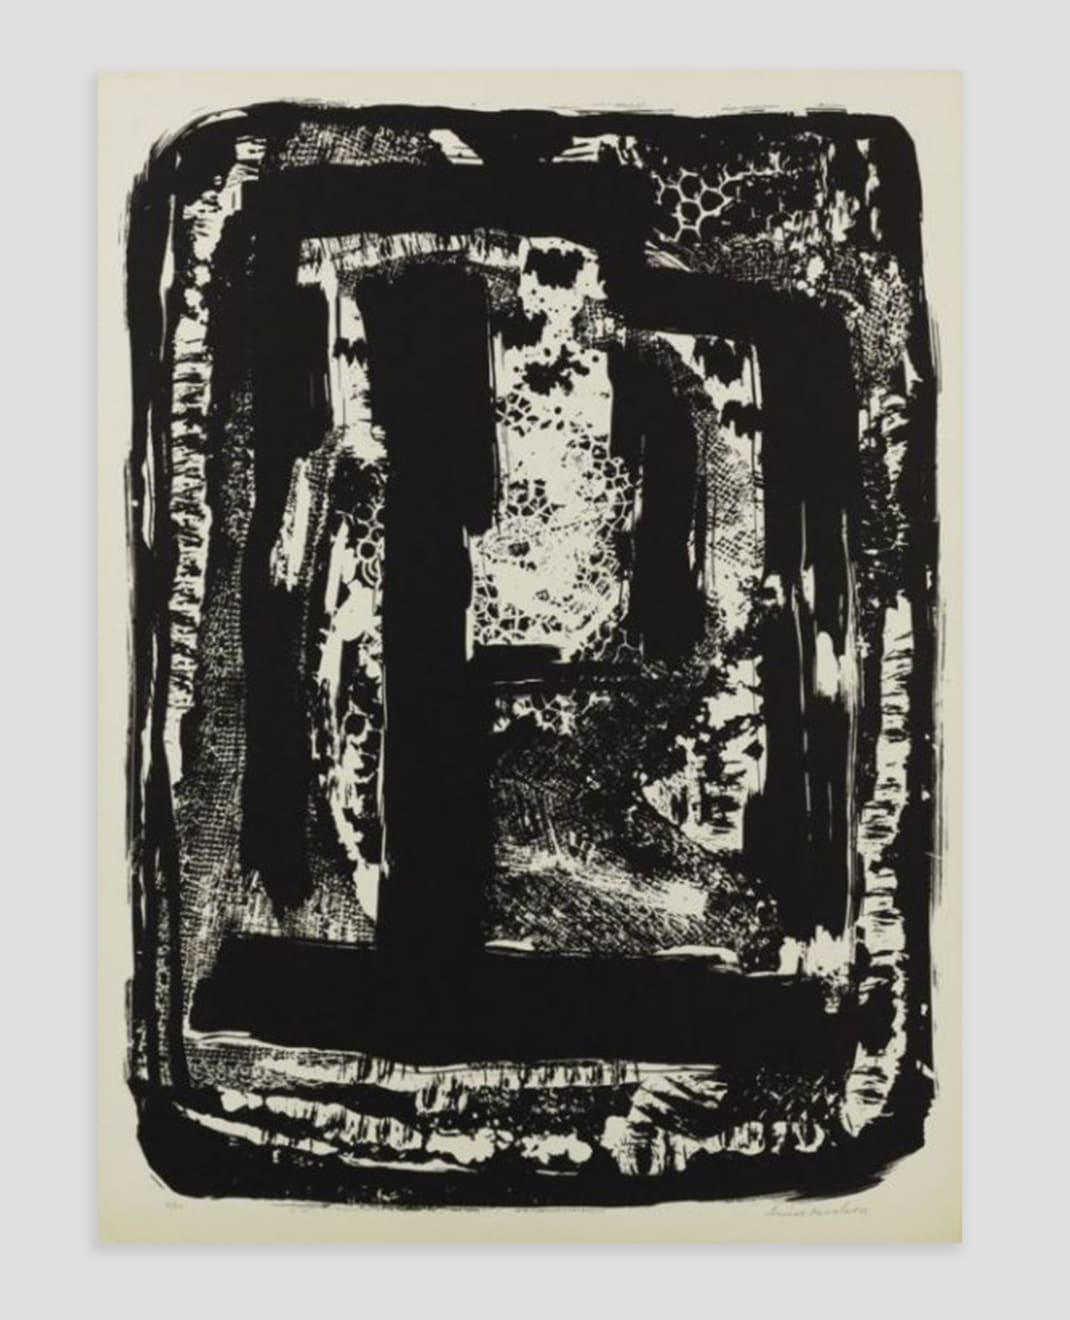 Louise Nevelson, Untitled, 1963